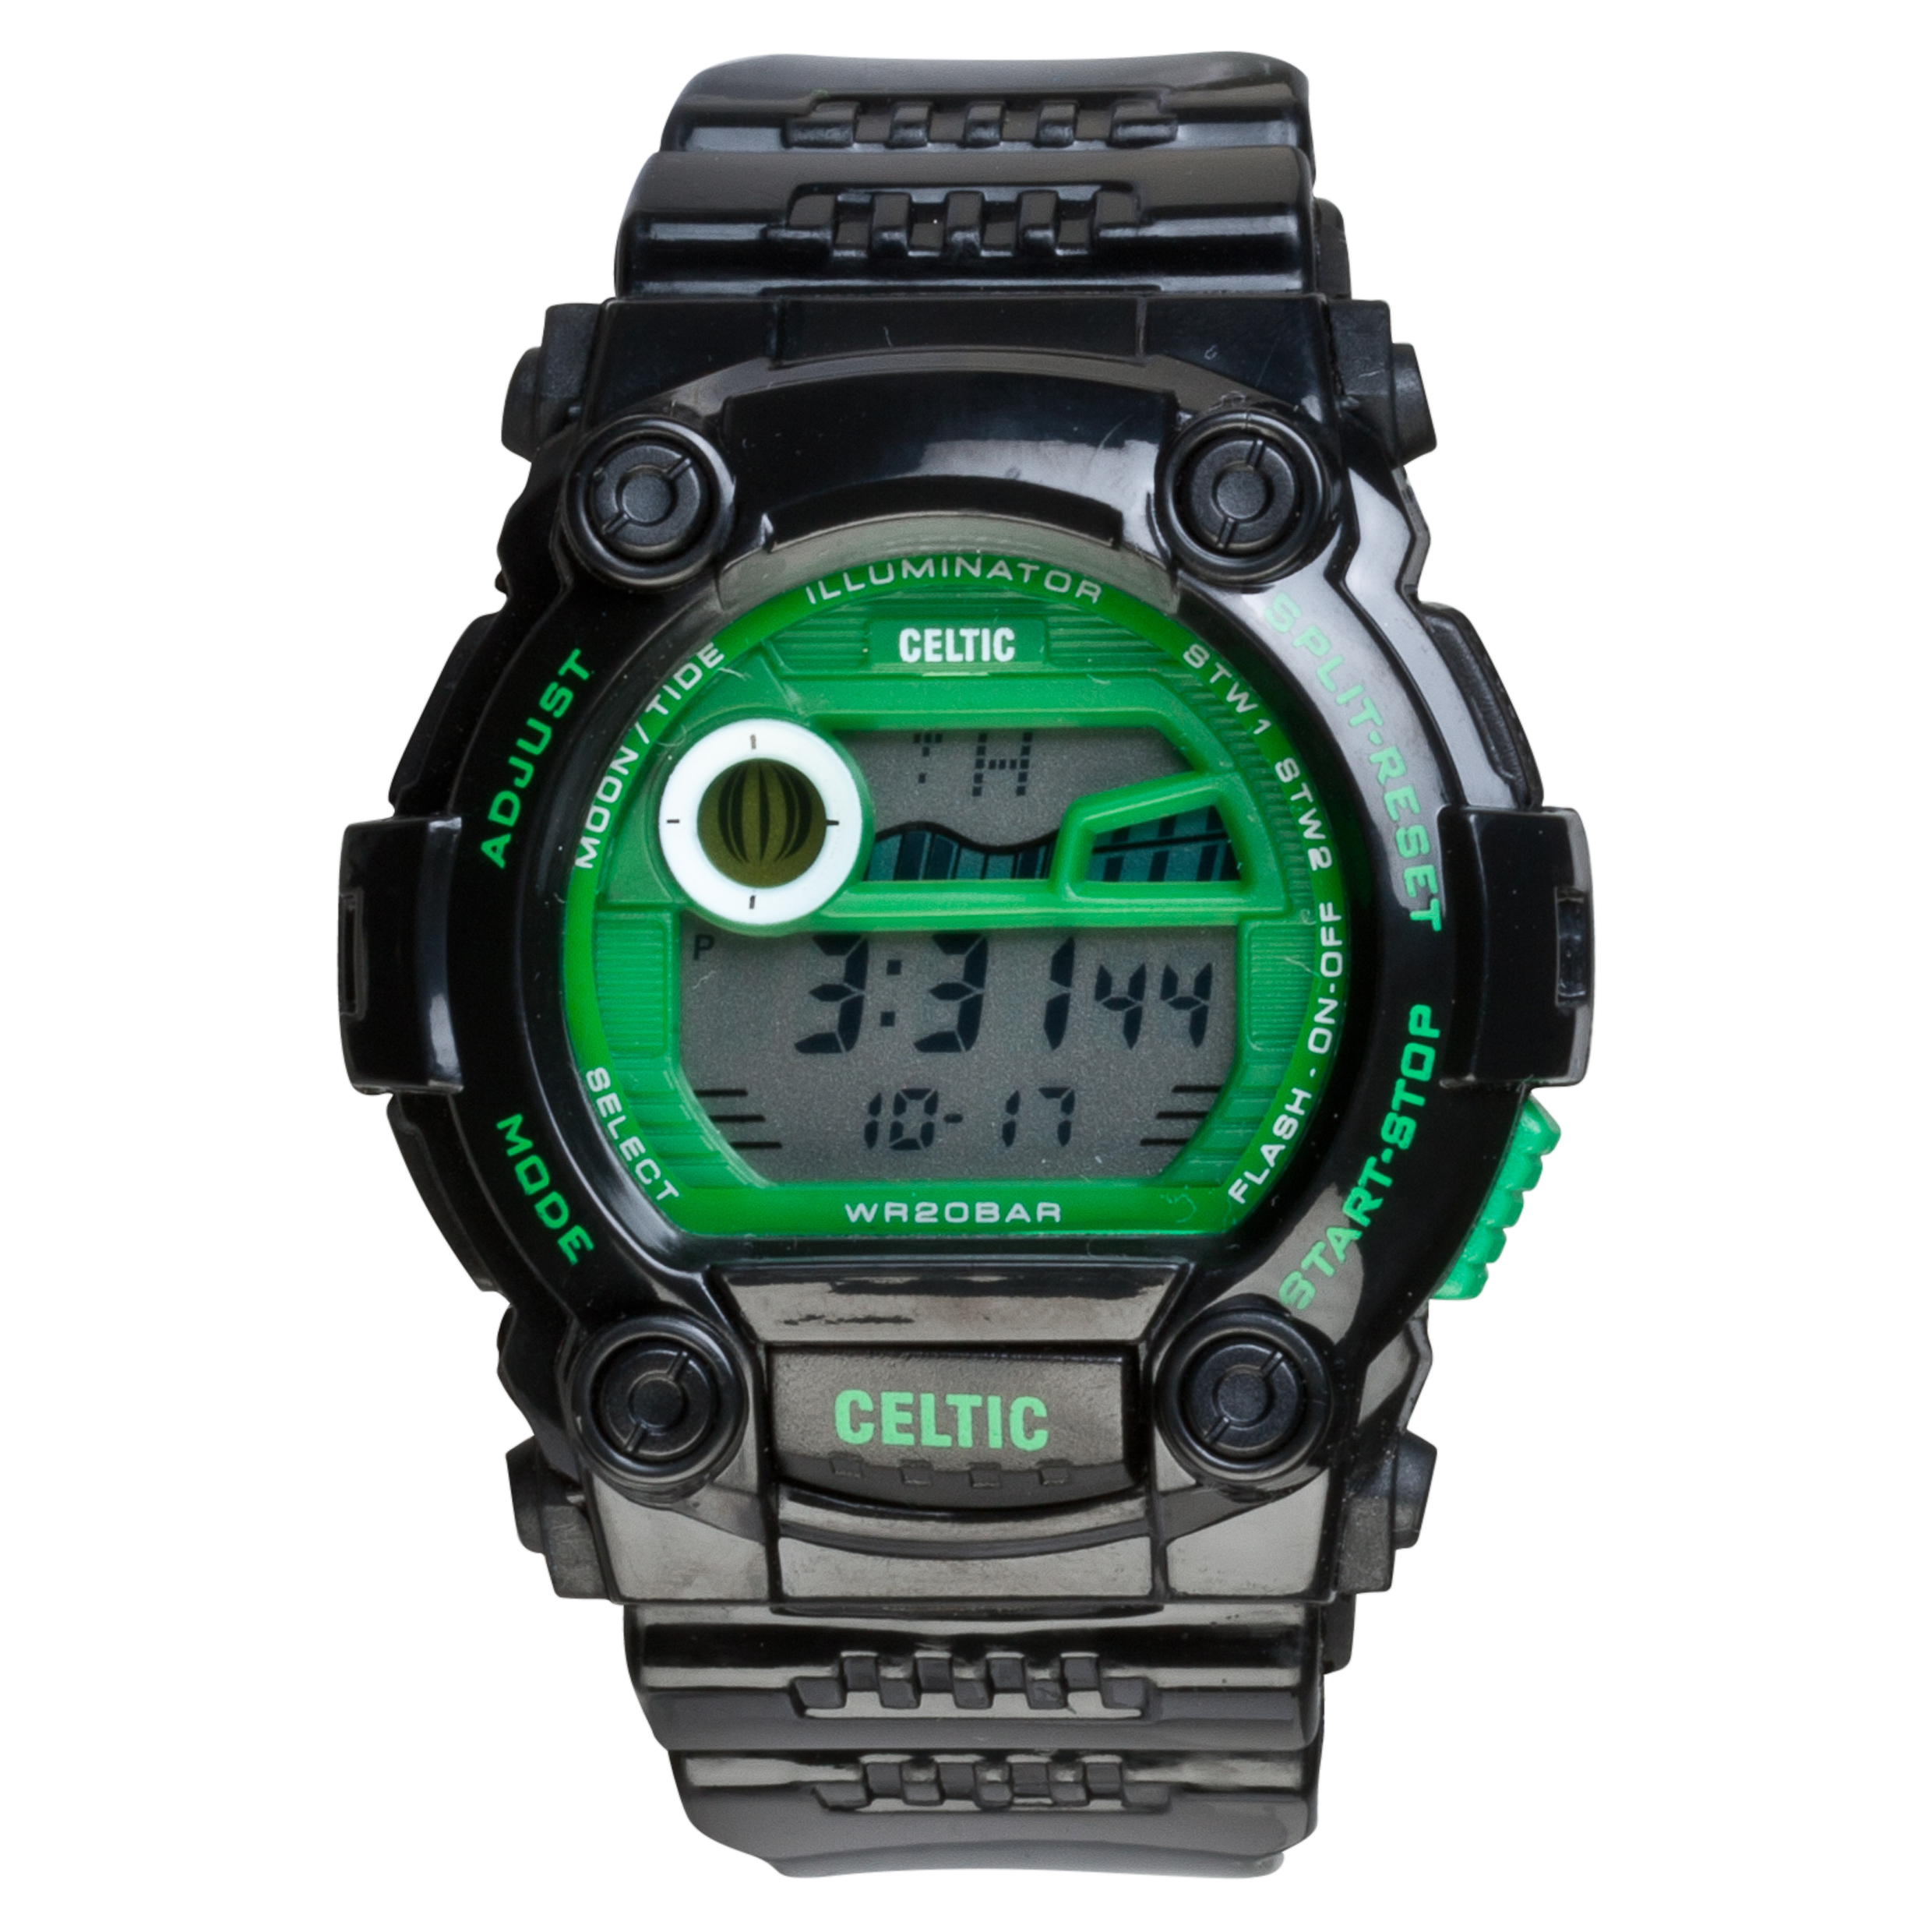 Celtic Digital Sports Watch